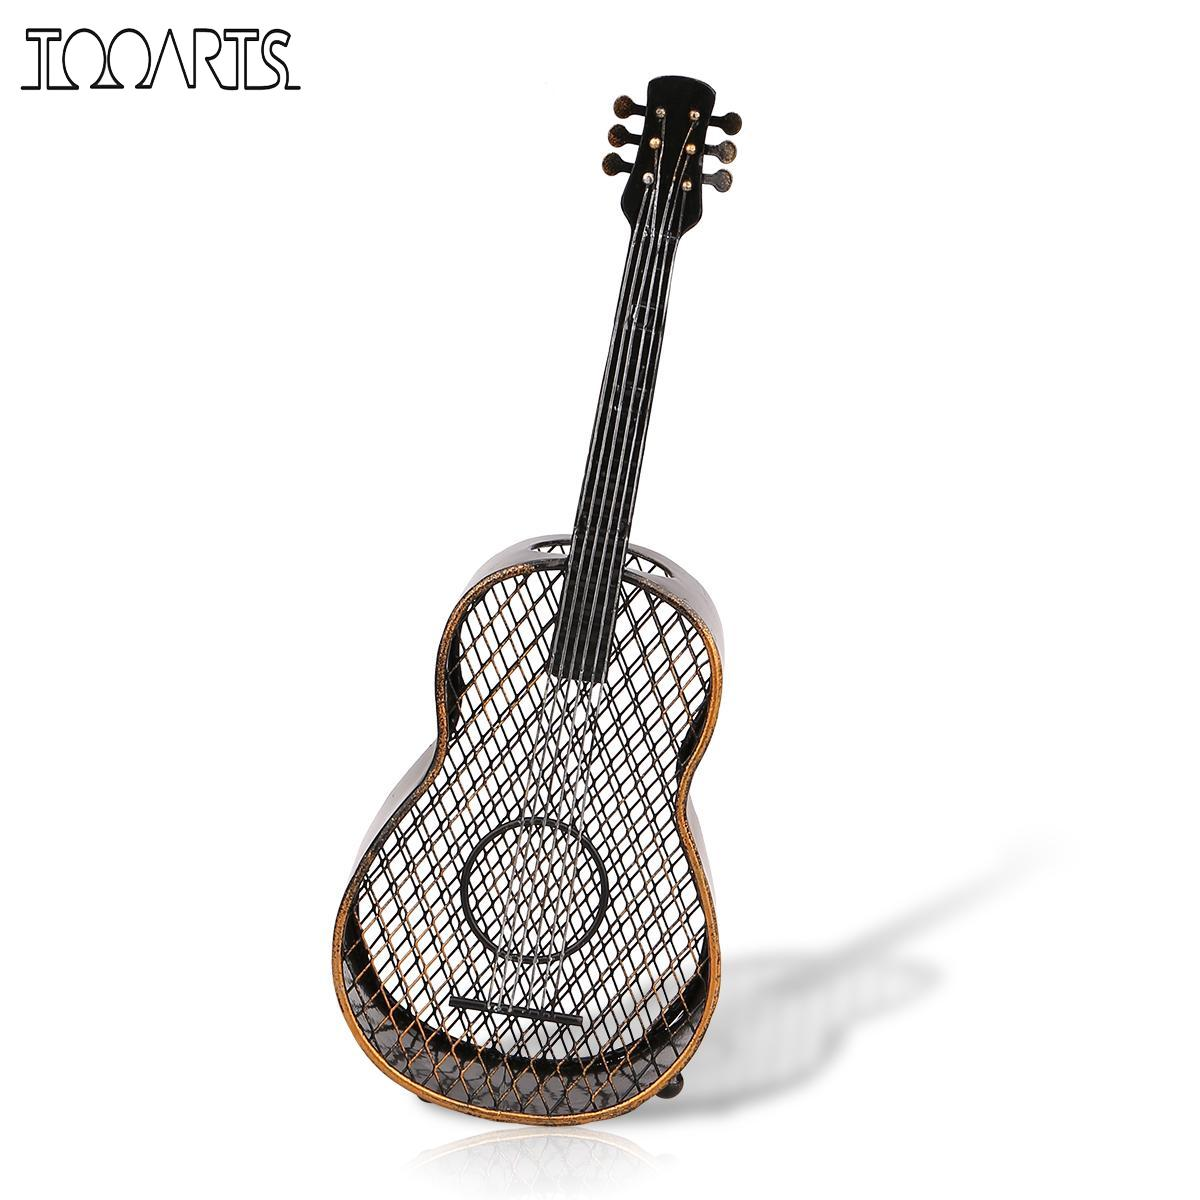 TOOARTS Guitar wine cork container Handcrafts Home decoration Decorations Practical crafts vintage home decor